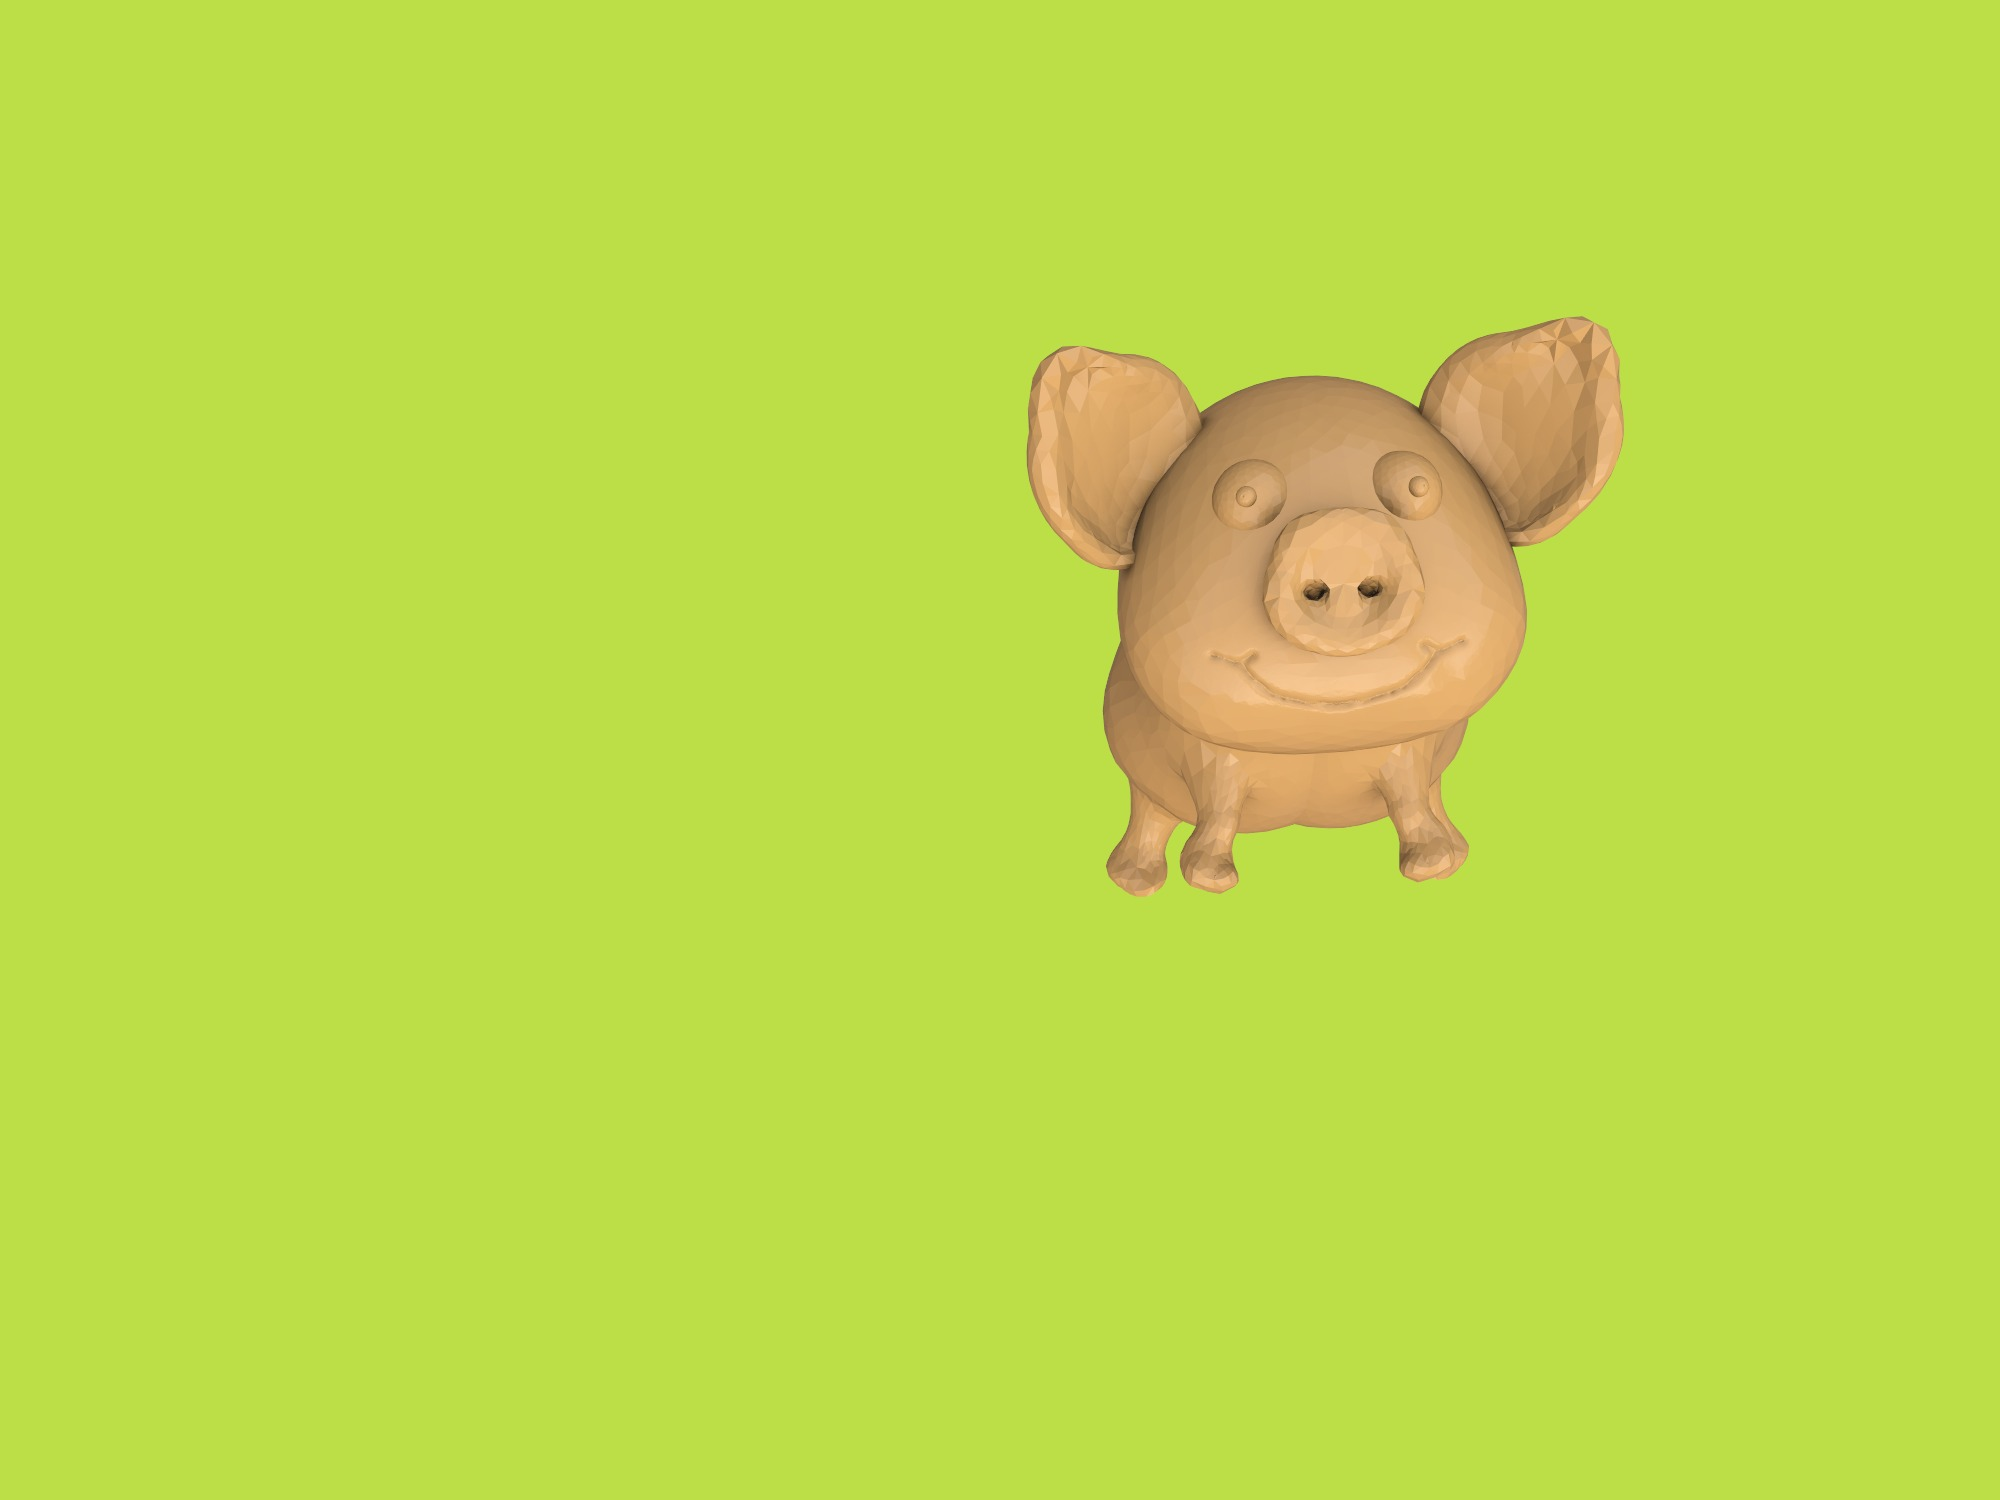 Pig studio Shamanis - 3D design by shamanis on Dec 10, 2018